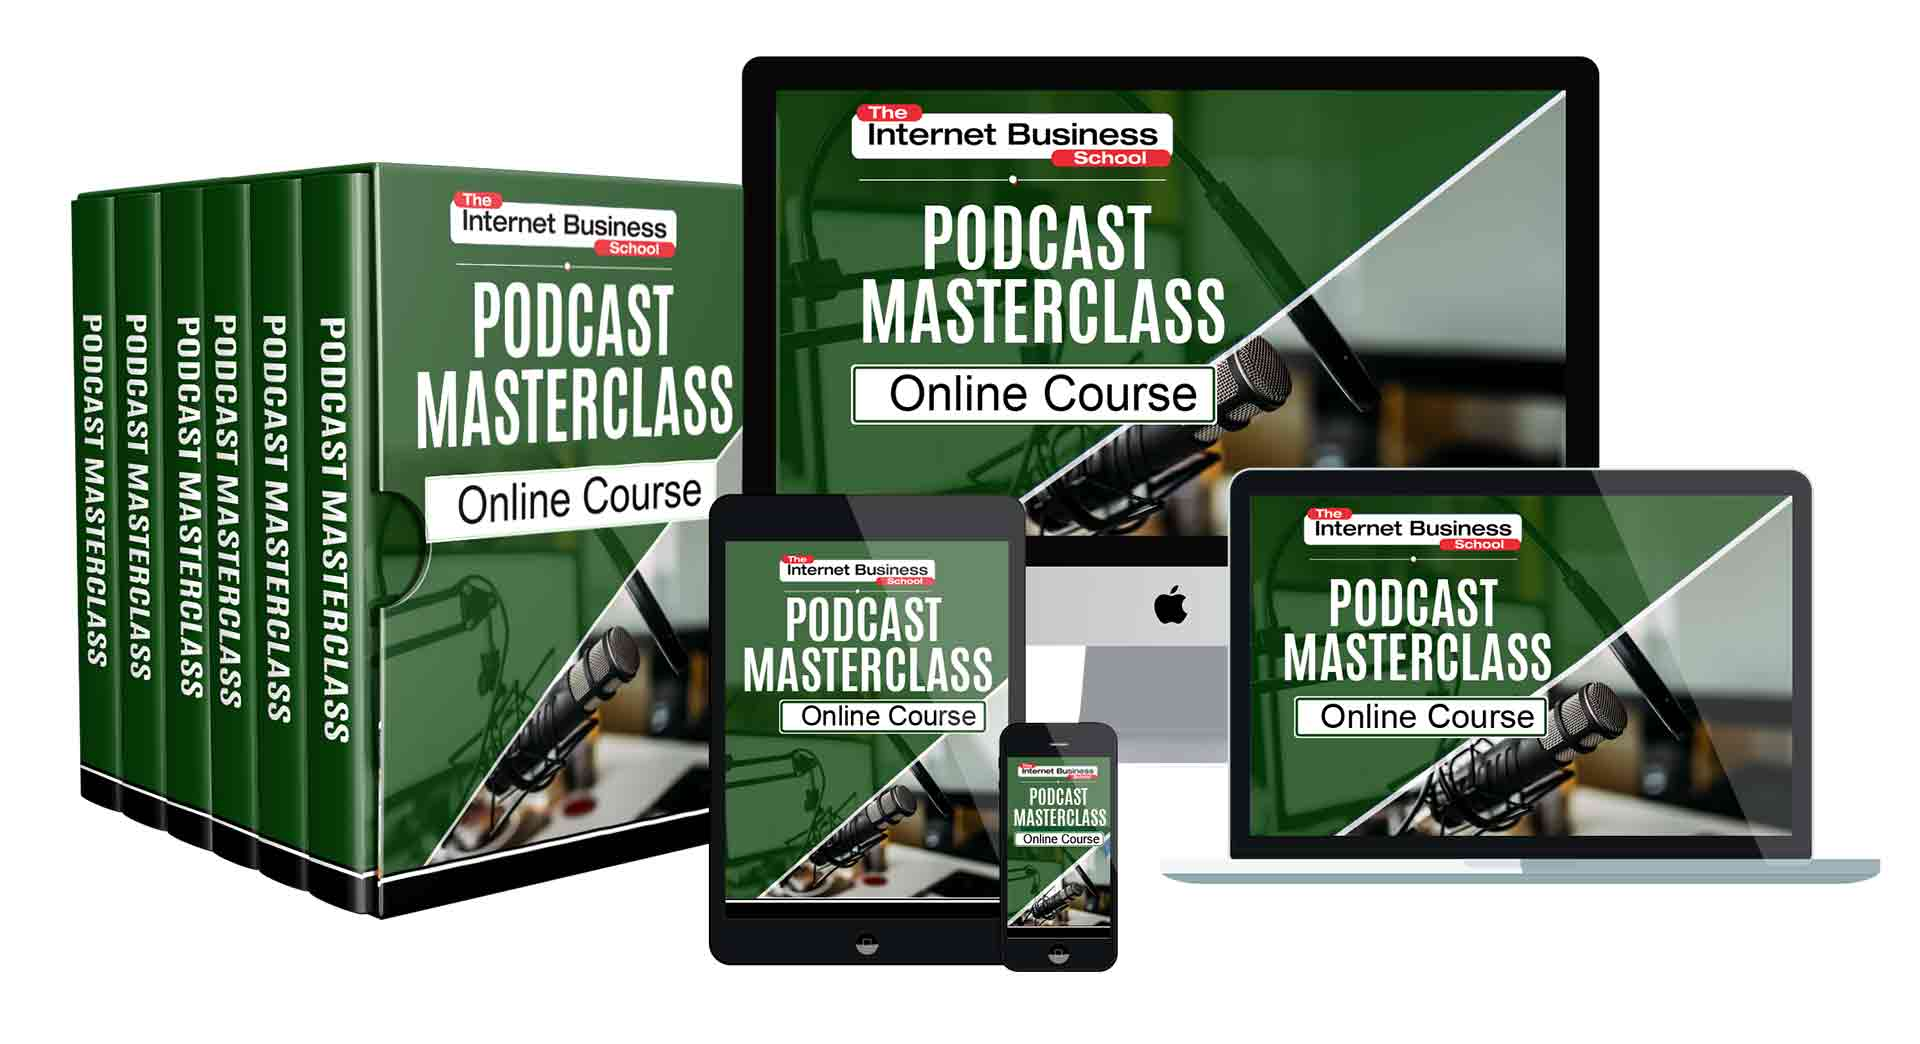 Podcast Masterclass - Cotswold Websites